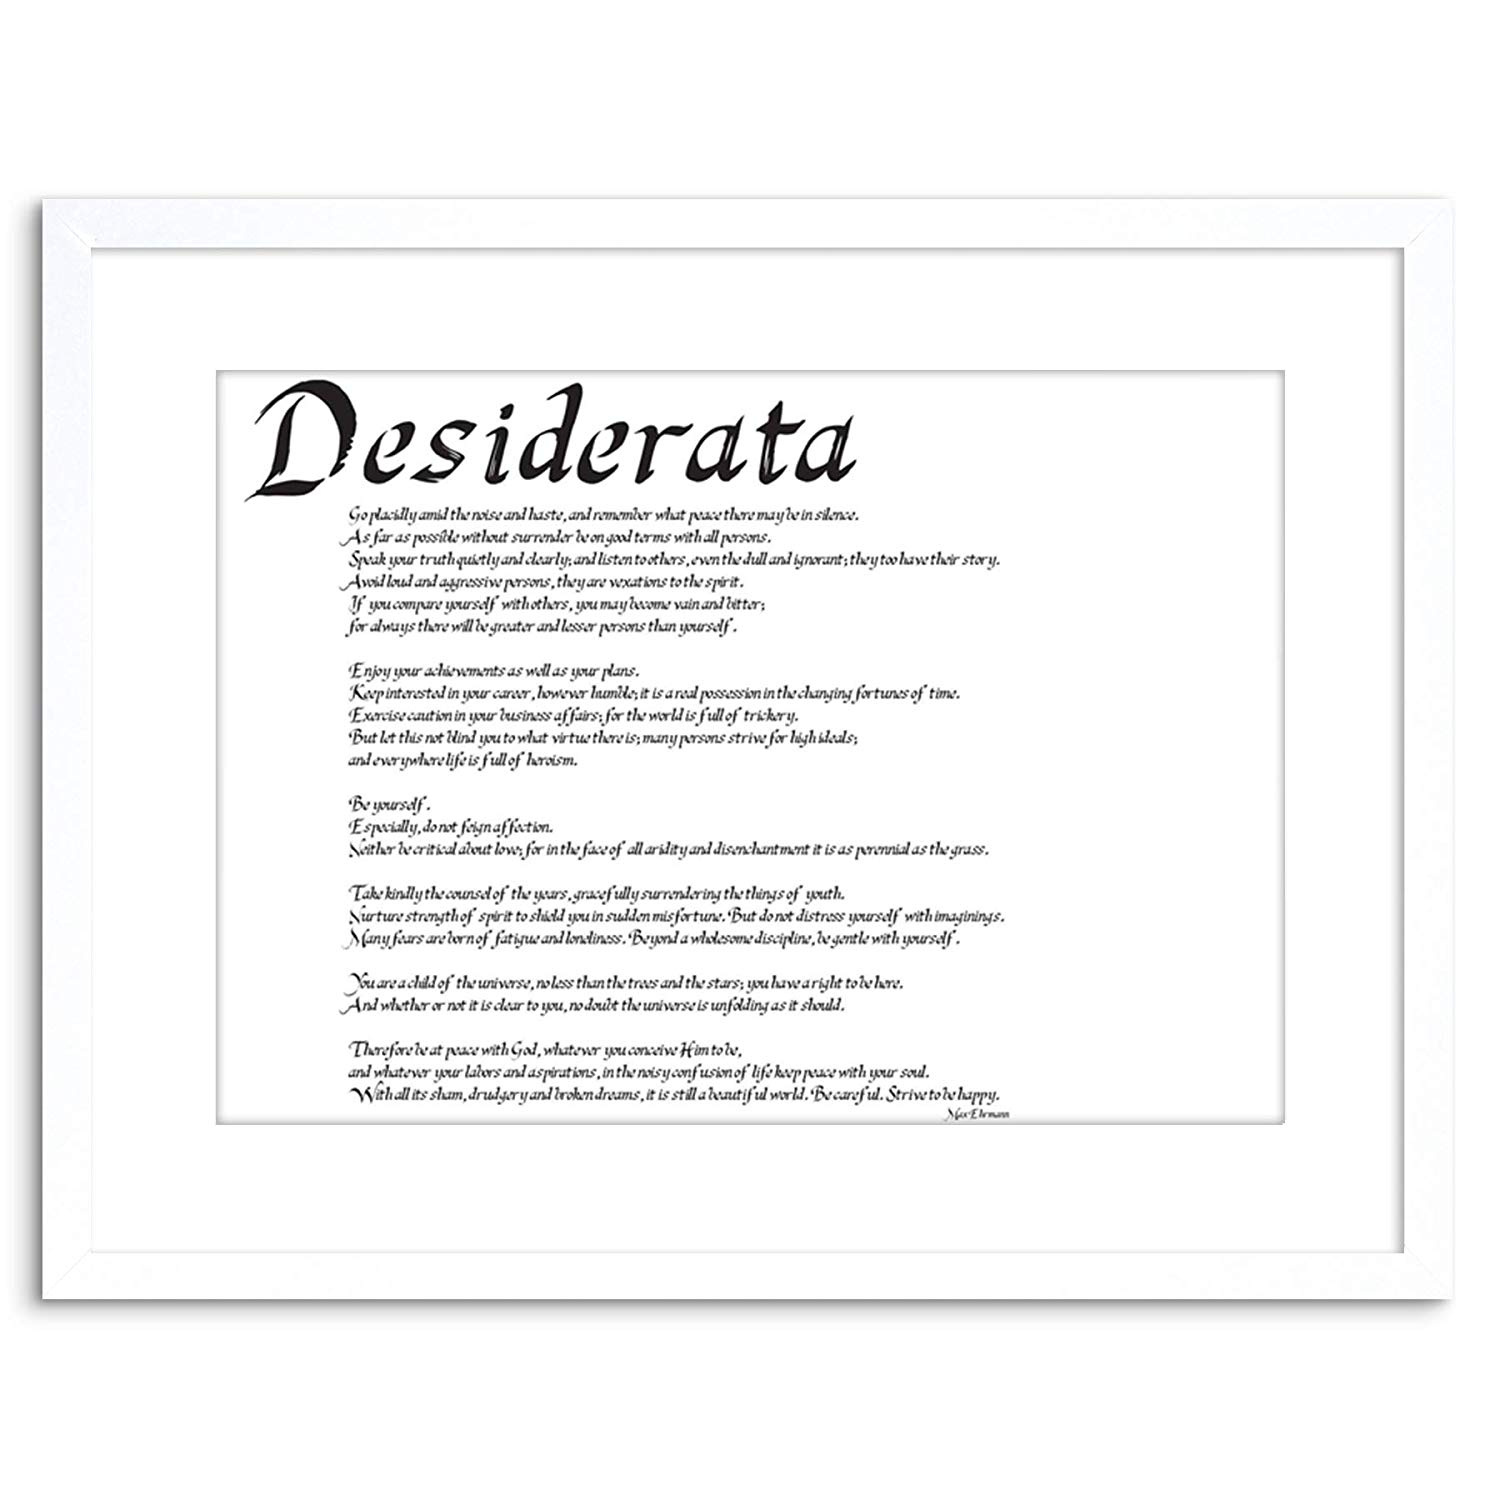 graphic regarding Desiderata Printable identified as 23cm x 18cm DESIDERATA Shift PLACIDLY Amongst Sounds HASTE Estimate TYPOGRAPHY EHRMANN FRAMED WALL Artwork PRINT Visualize Portray Picket Image Body BLACK WHITE OAK